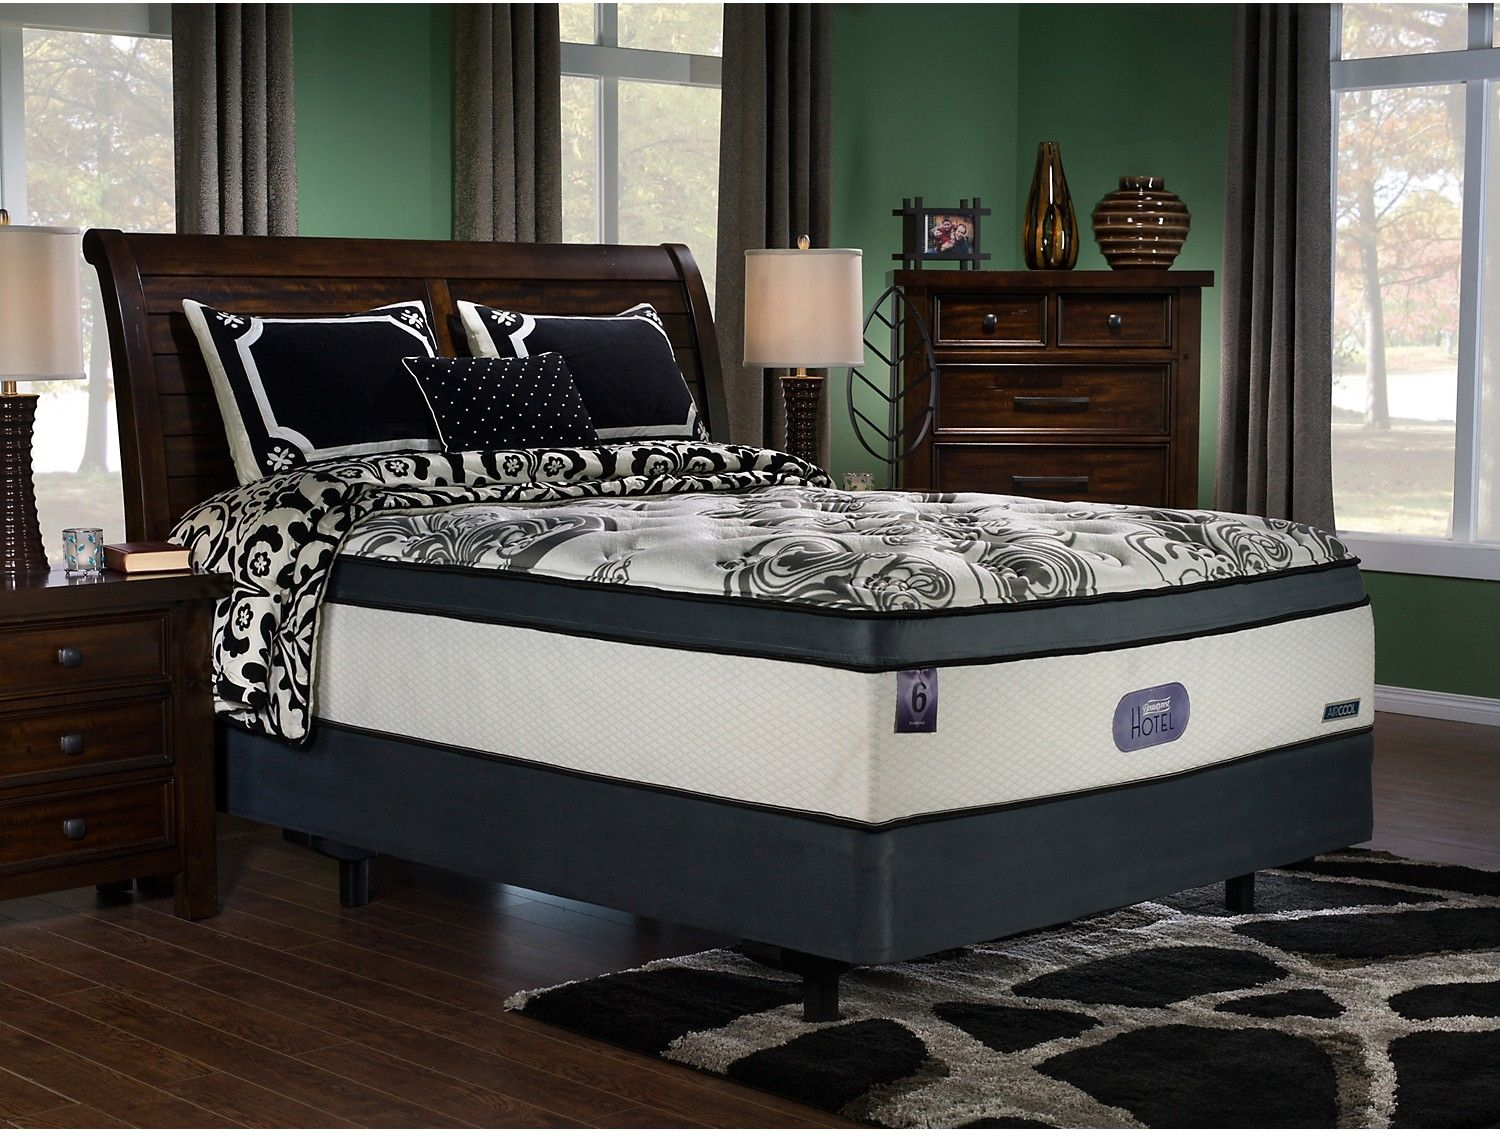 beautyresta hotel 6 diamond plush ultra comfort top queen mattress